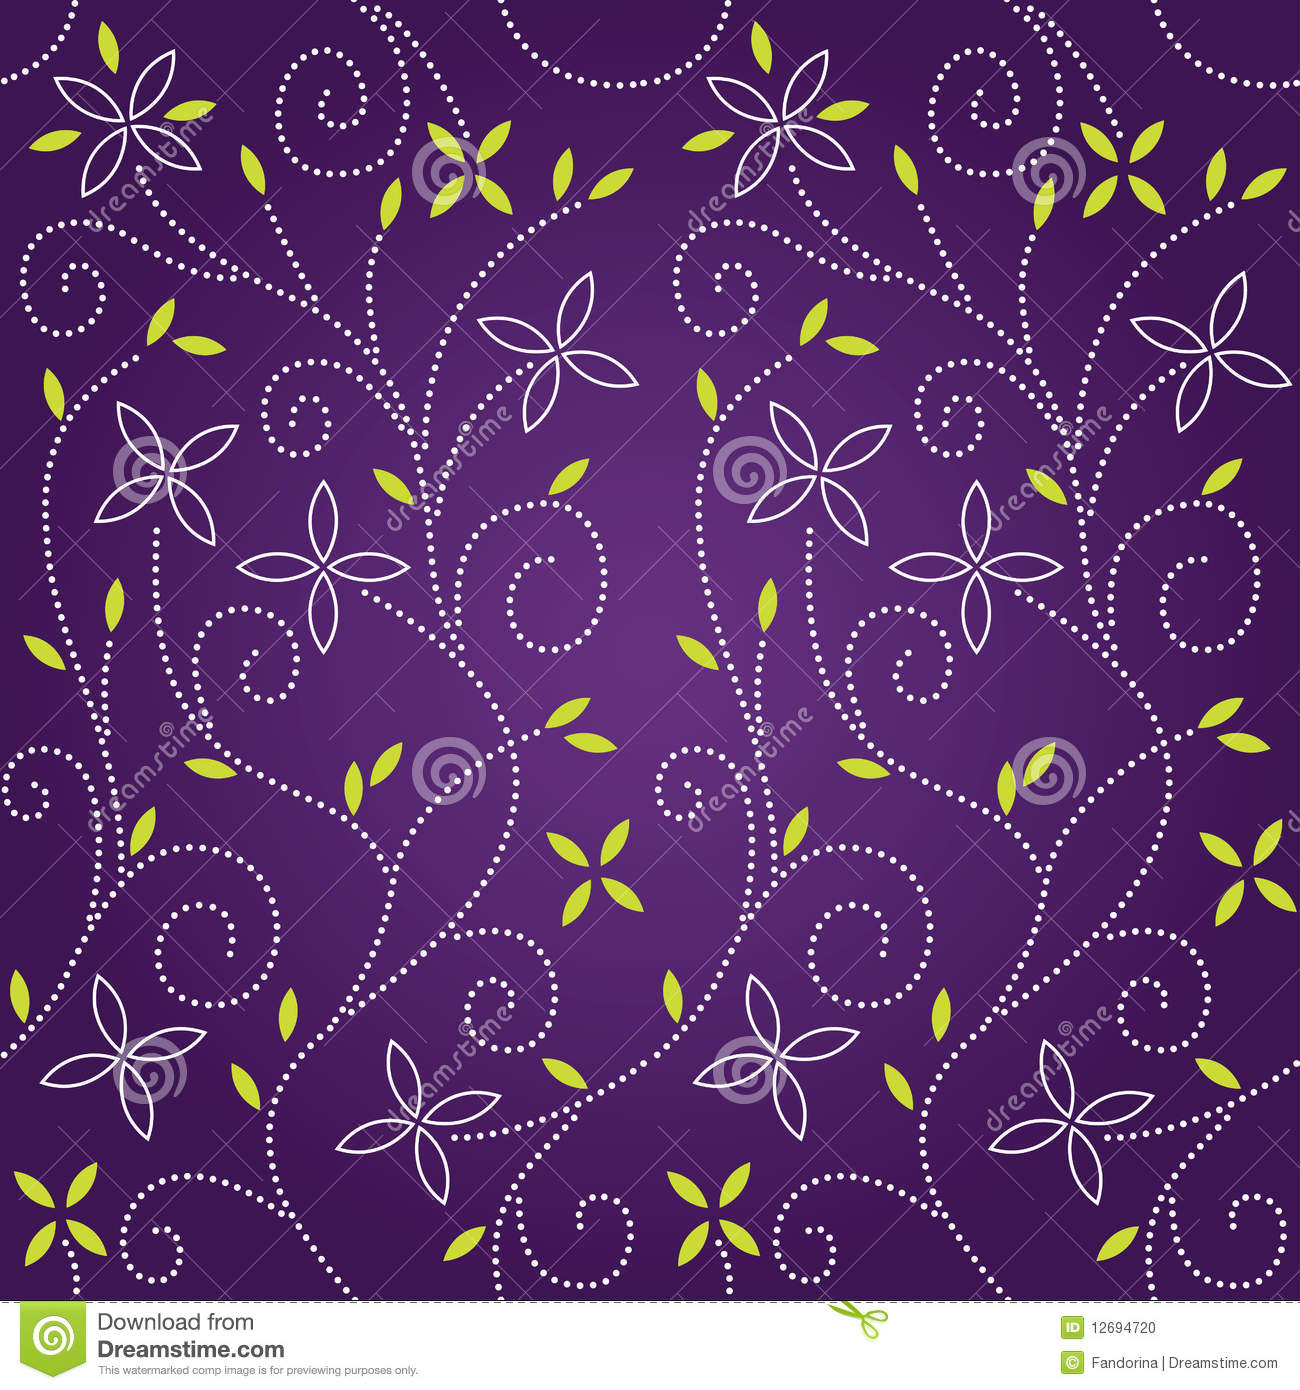 purple swirl background stock - photo #25